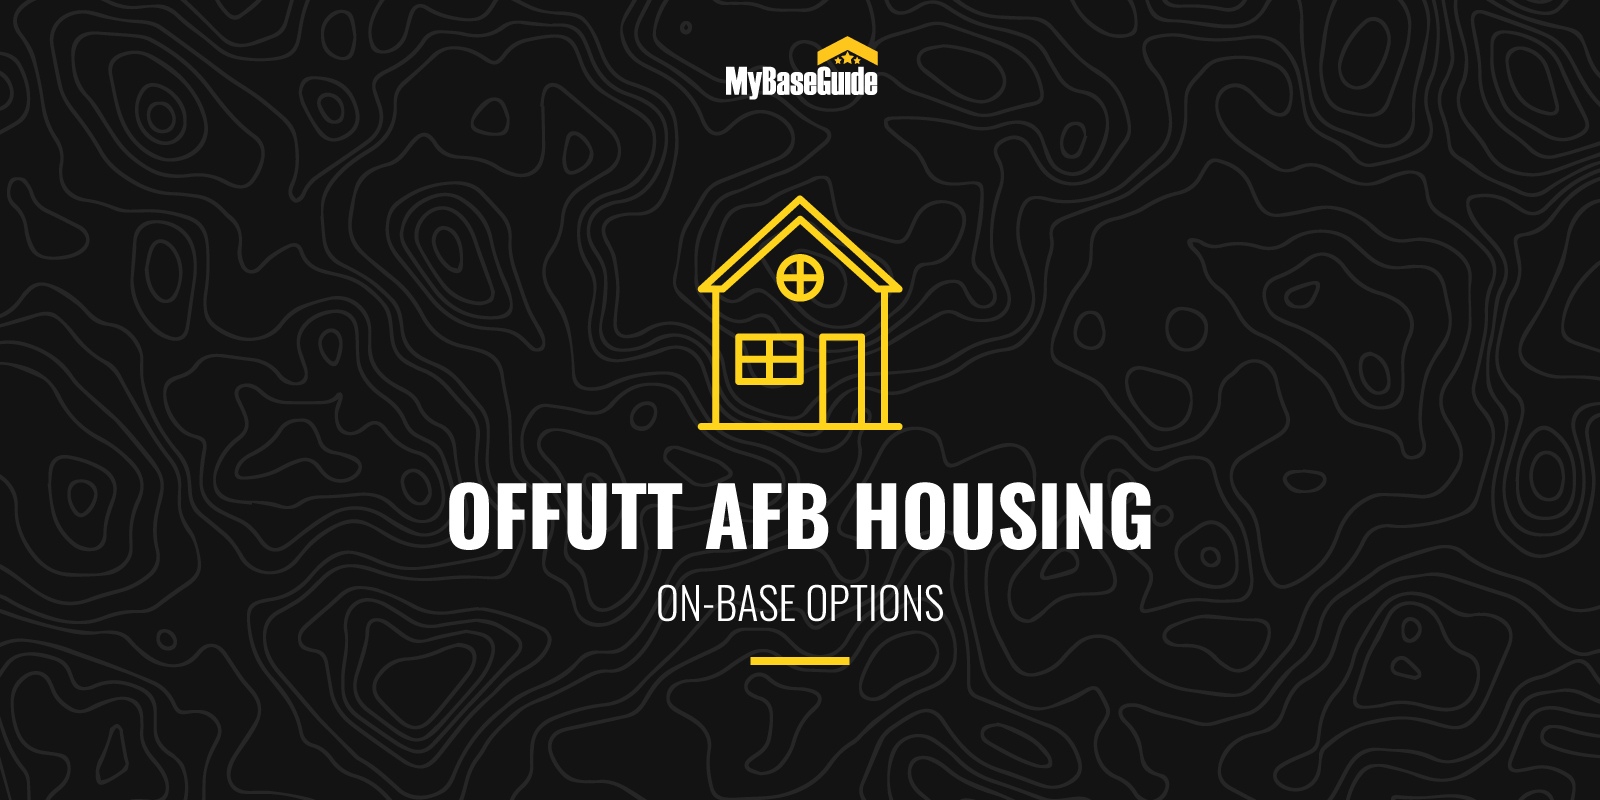 Offutt AFB Housing: On-Base Options